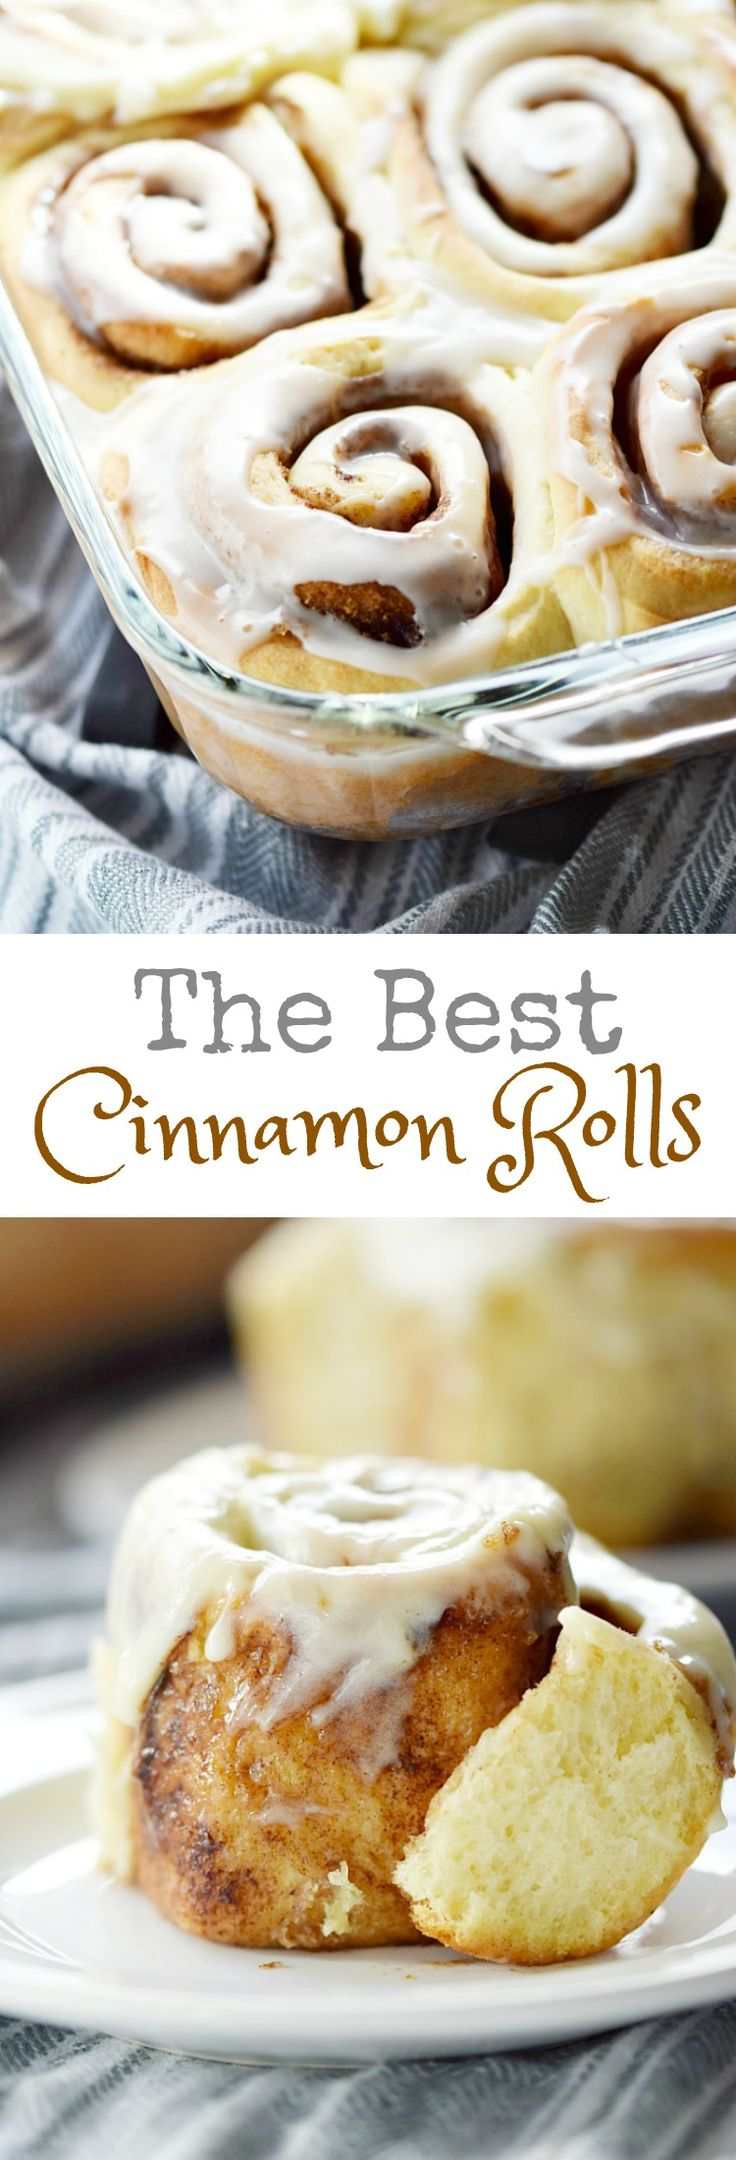 Good morning sunshine! These are The Best Cinnamon Rolls guaranteed to brighten up the dreariest of mornings, and they come with two icing options!! #feastndevour #breakfast #holidayrecipes #cinnamon via @cookwithcurls